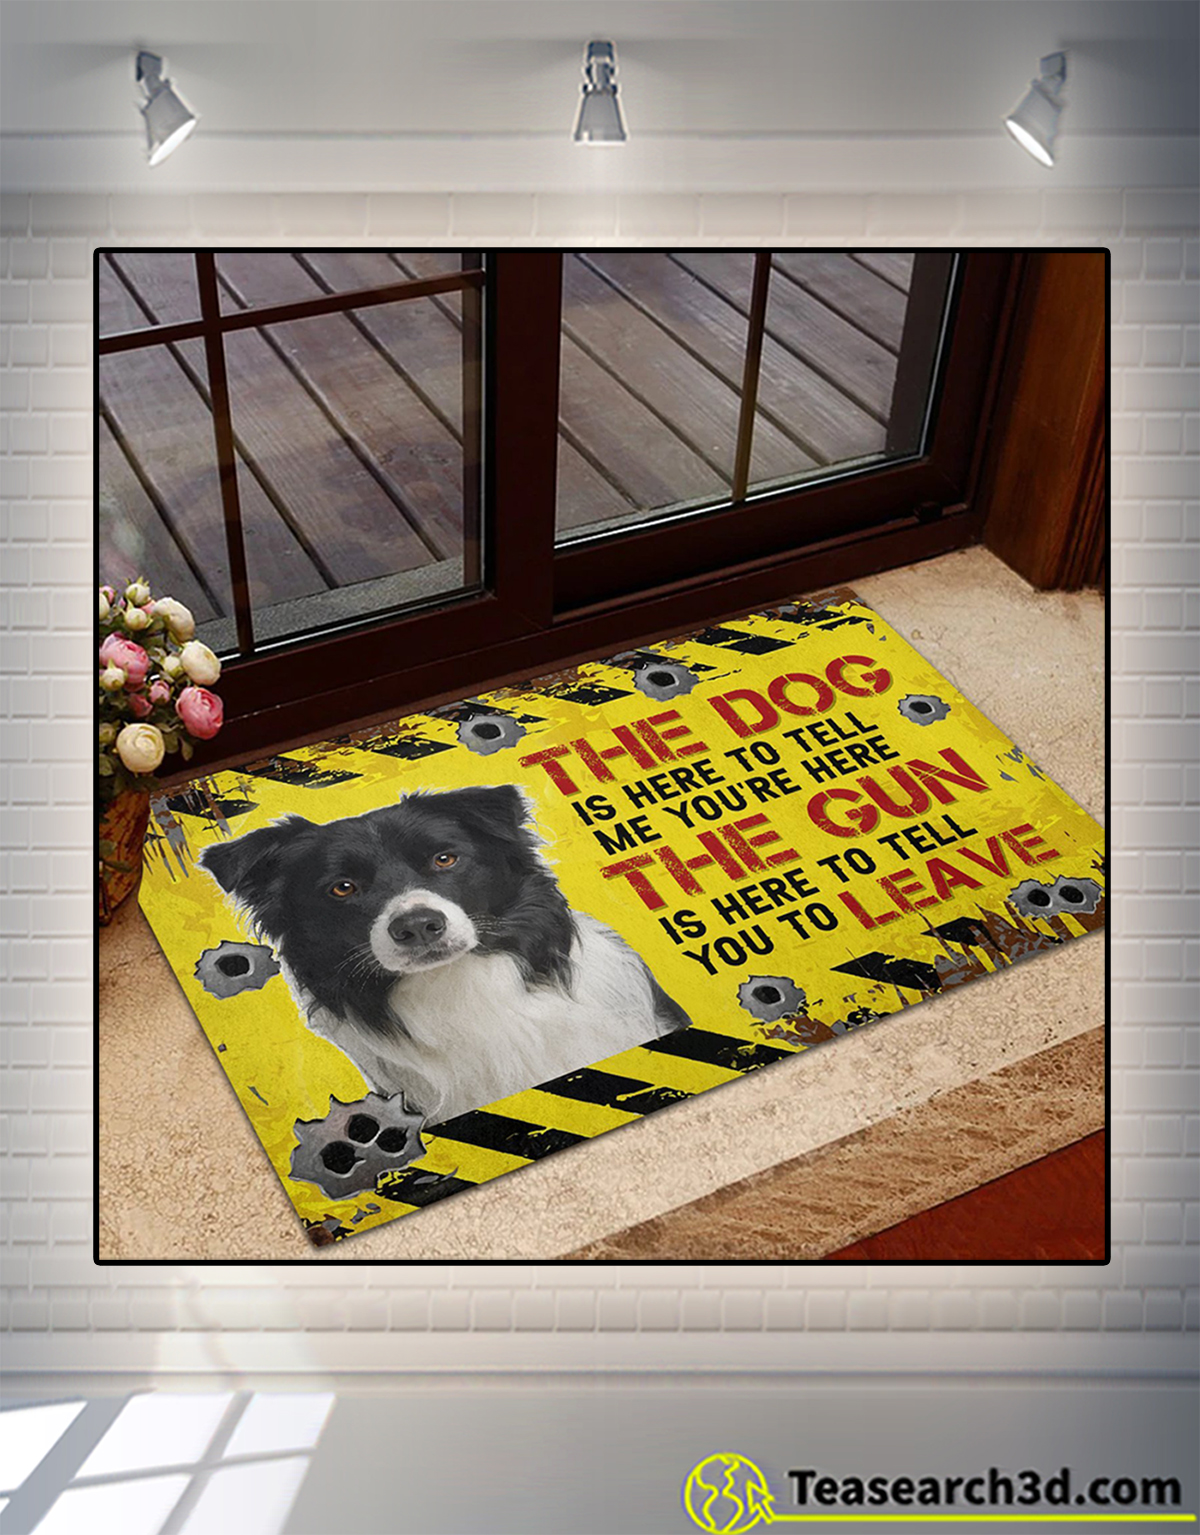 Border Collie The dog is here to tell me you're here doormat 2